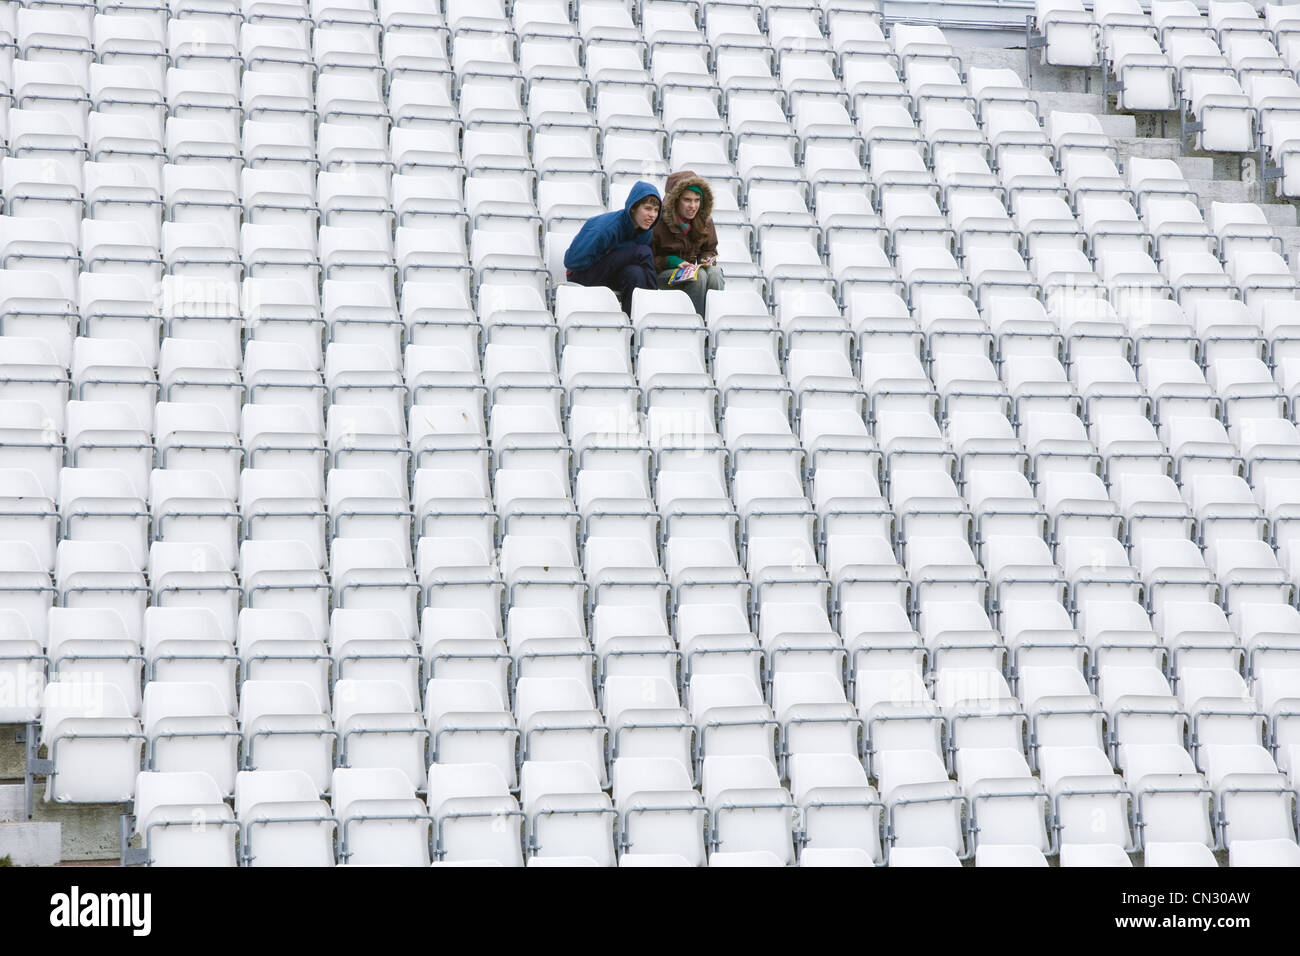 Couple sitting on stadium seats - Stock Image